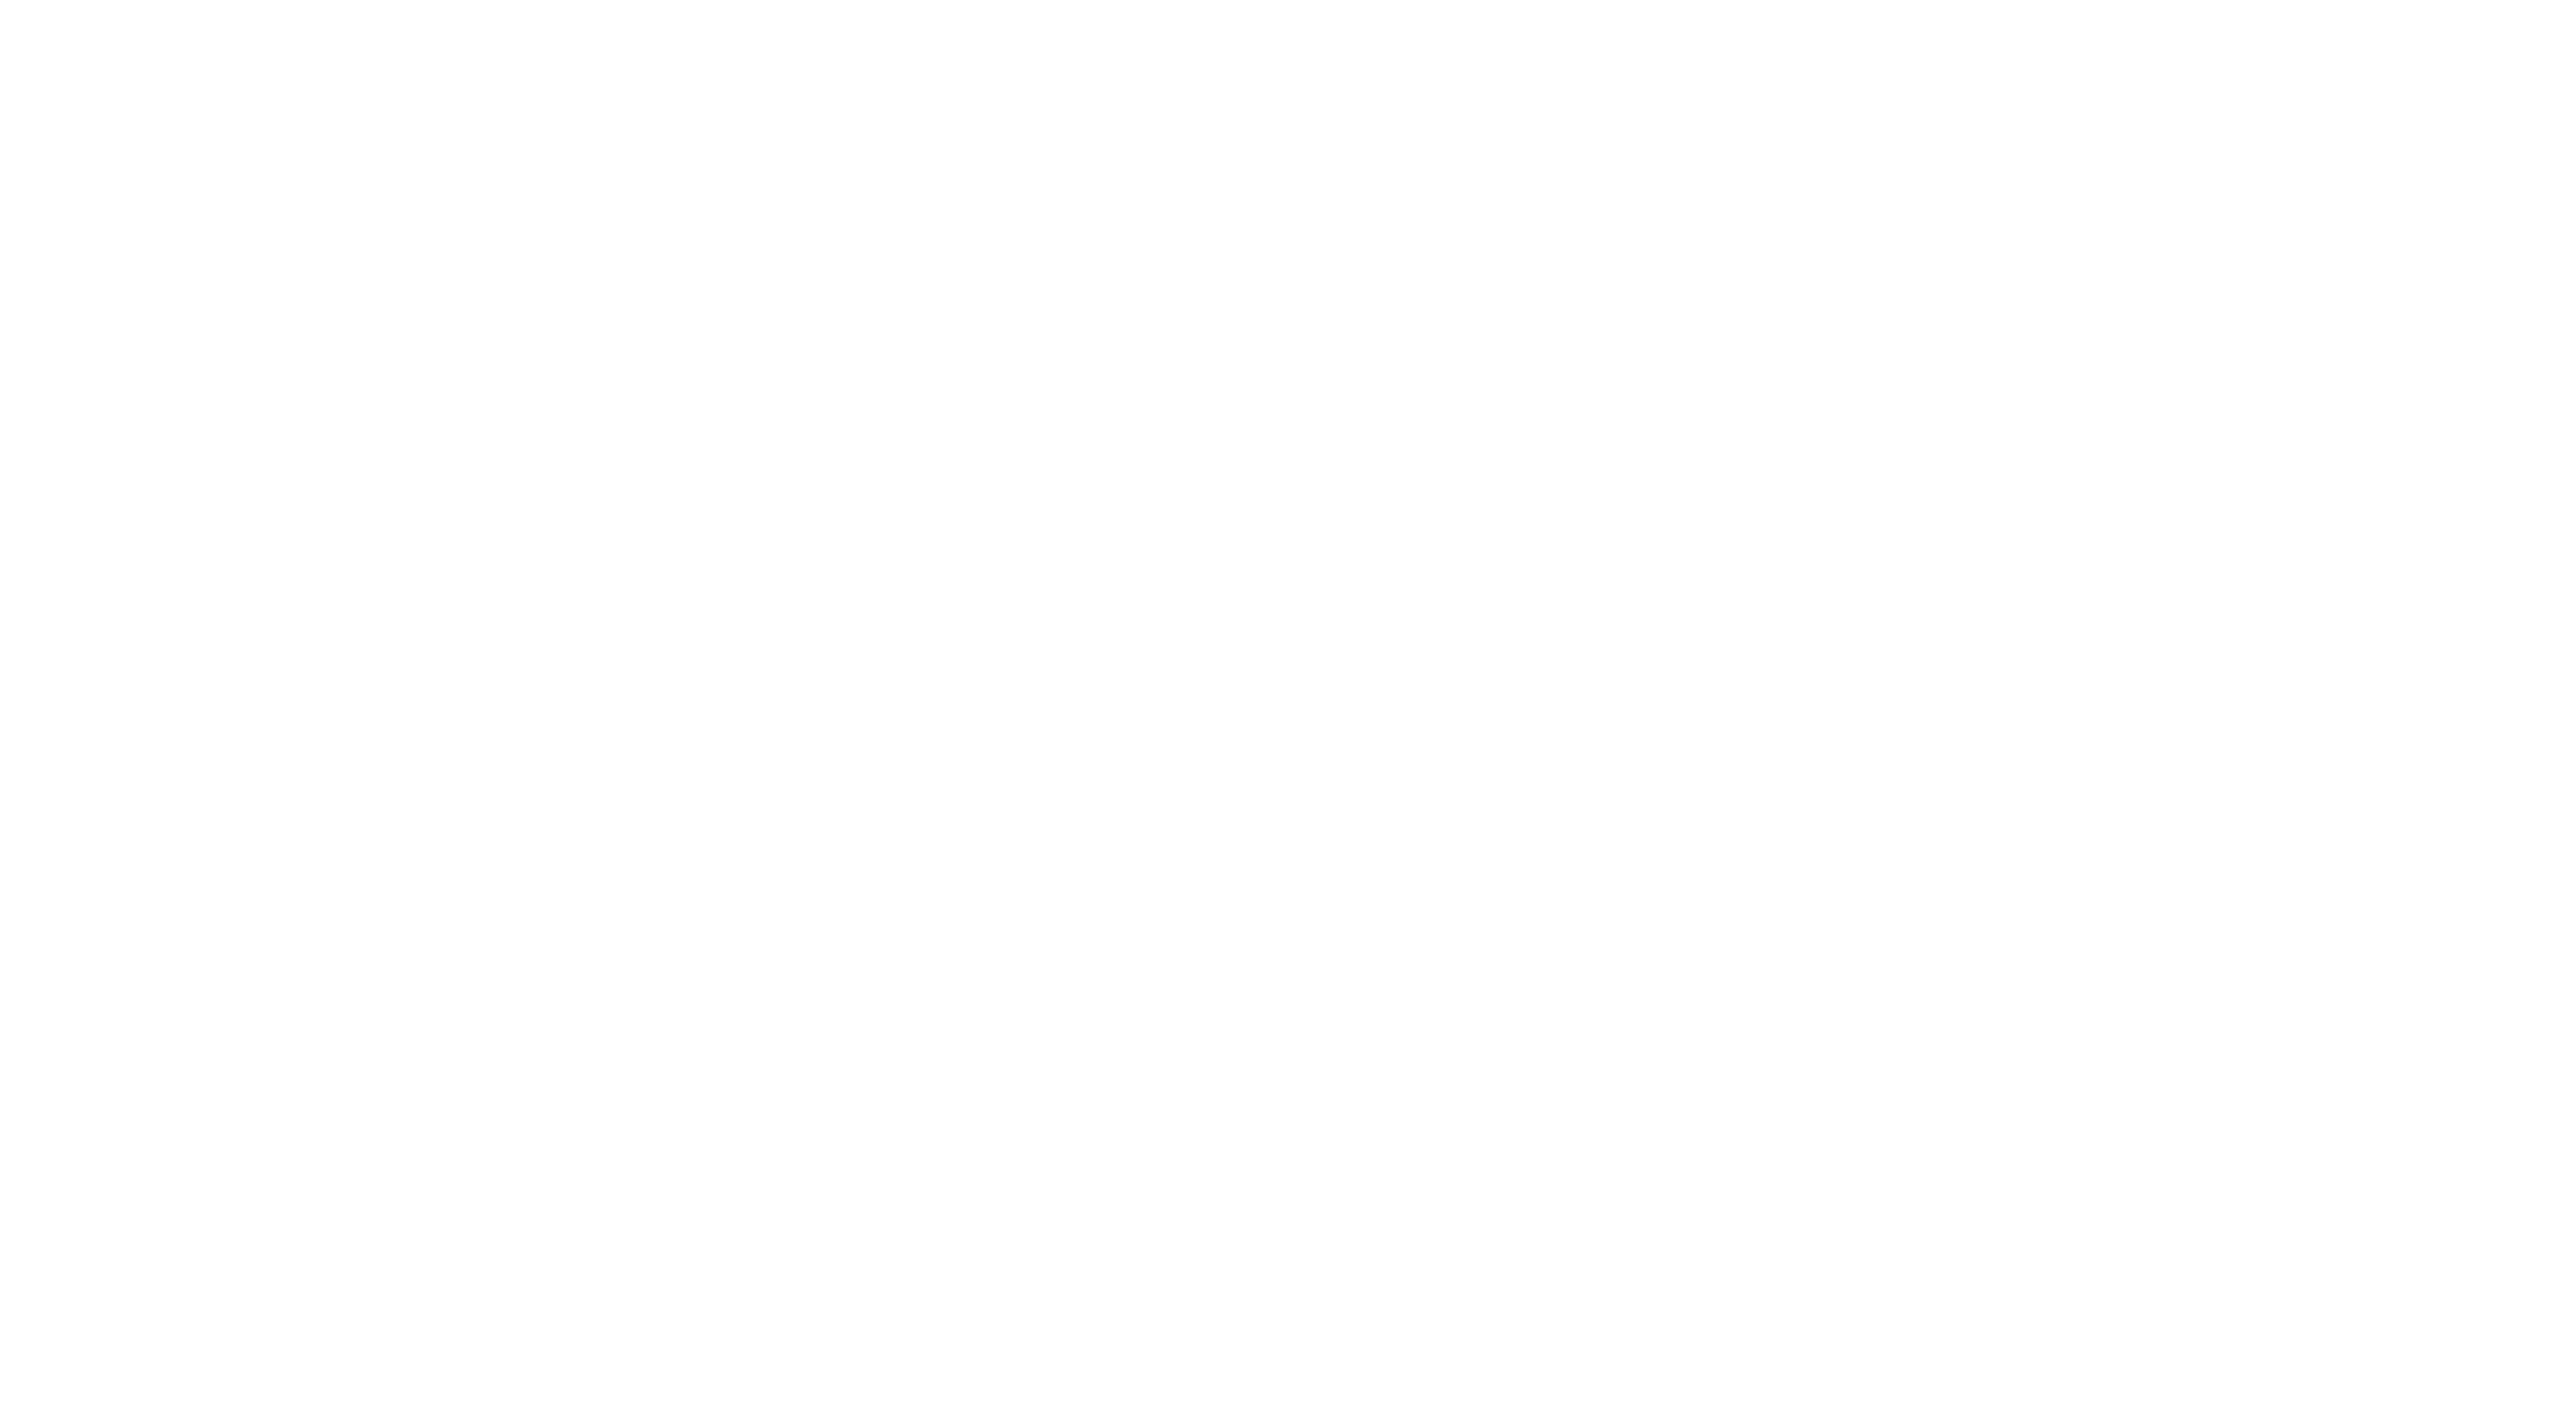 Elite Coach With Transparent Background